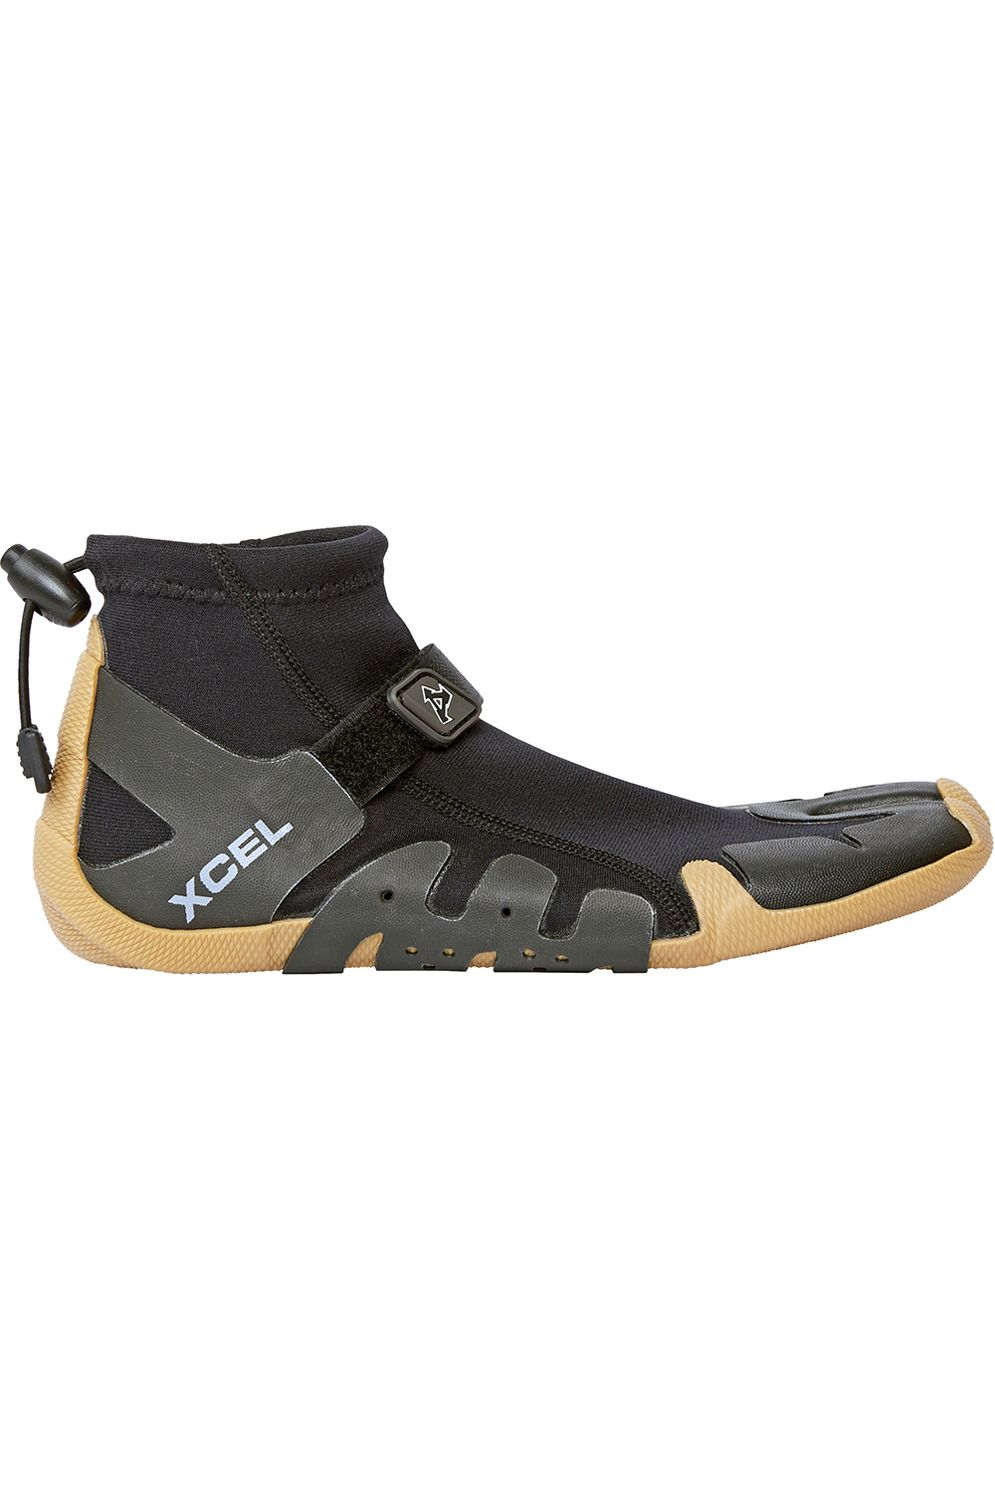 Botas Neoprene Xcel 1MM INFINITI SPLIT TOE REEF Black/Gum